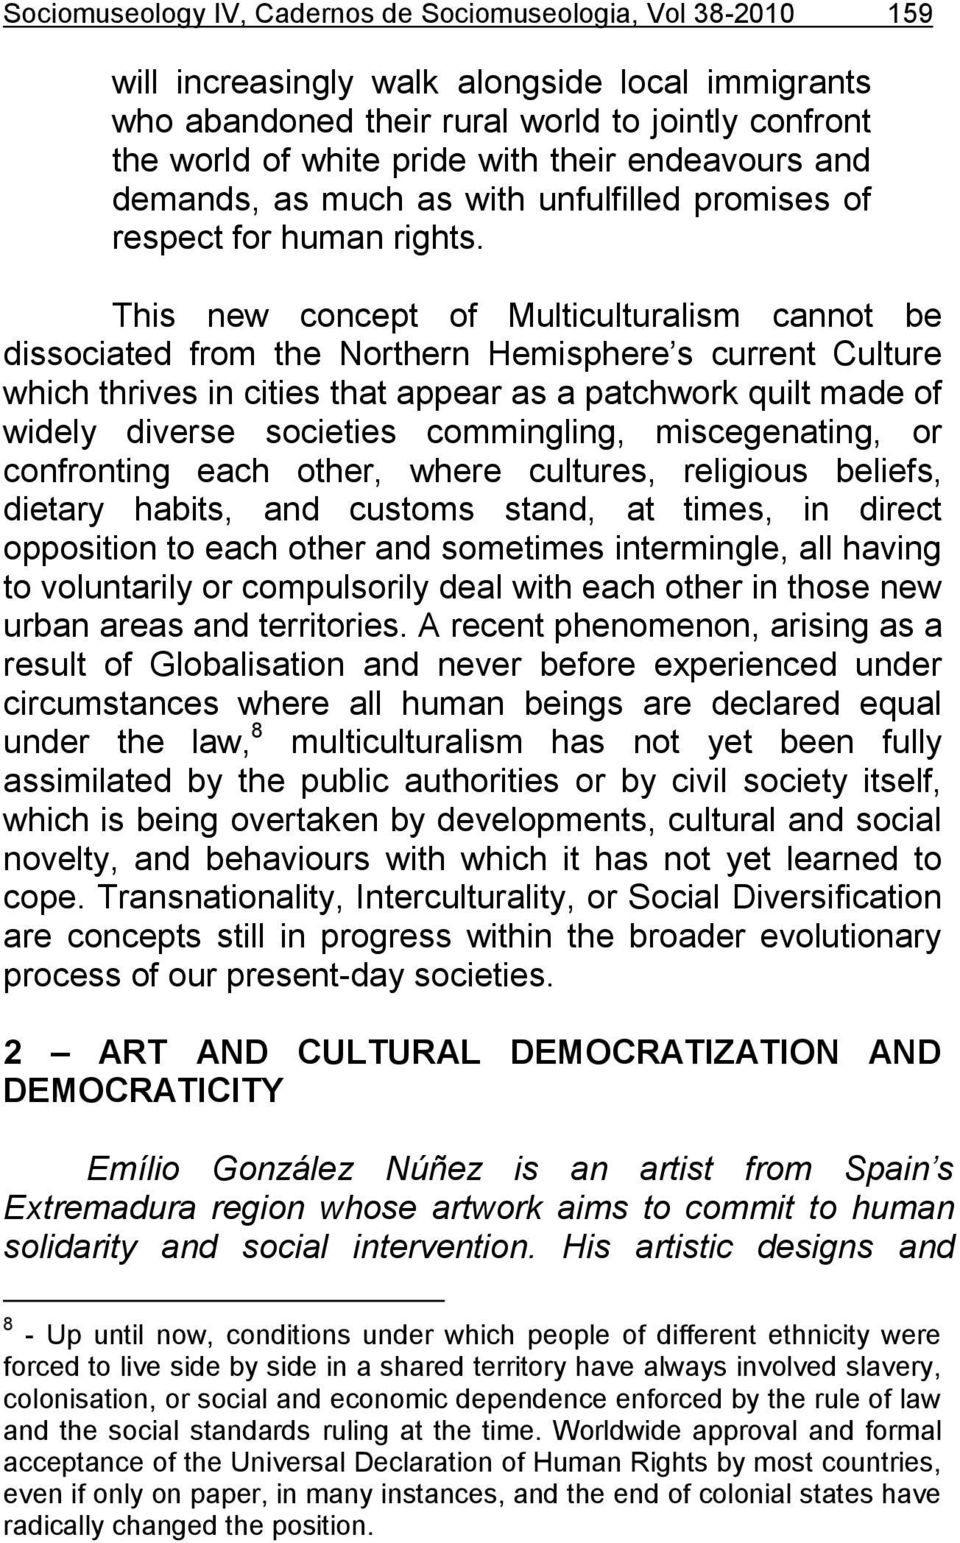 This new concept of Multiculturalism cannot be dissociated from the Northern Hemisphere s current Culture which thrives in cities that appear as a patchwork quilt made of widely diverse societies